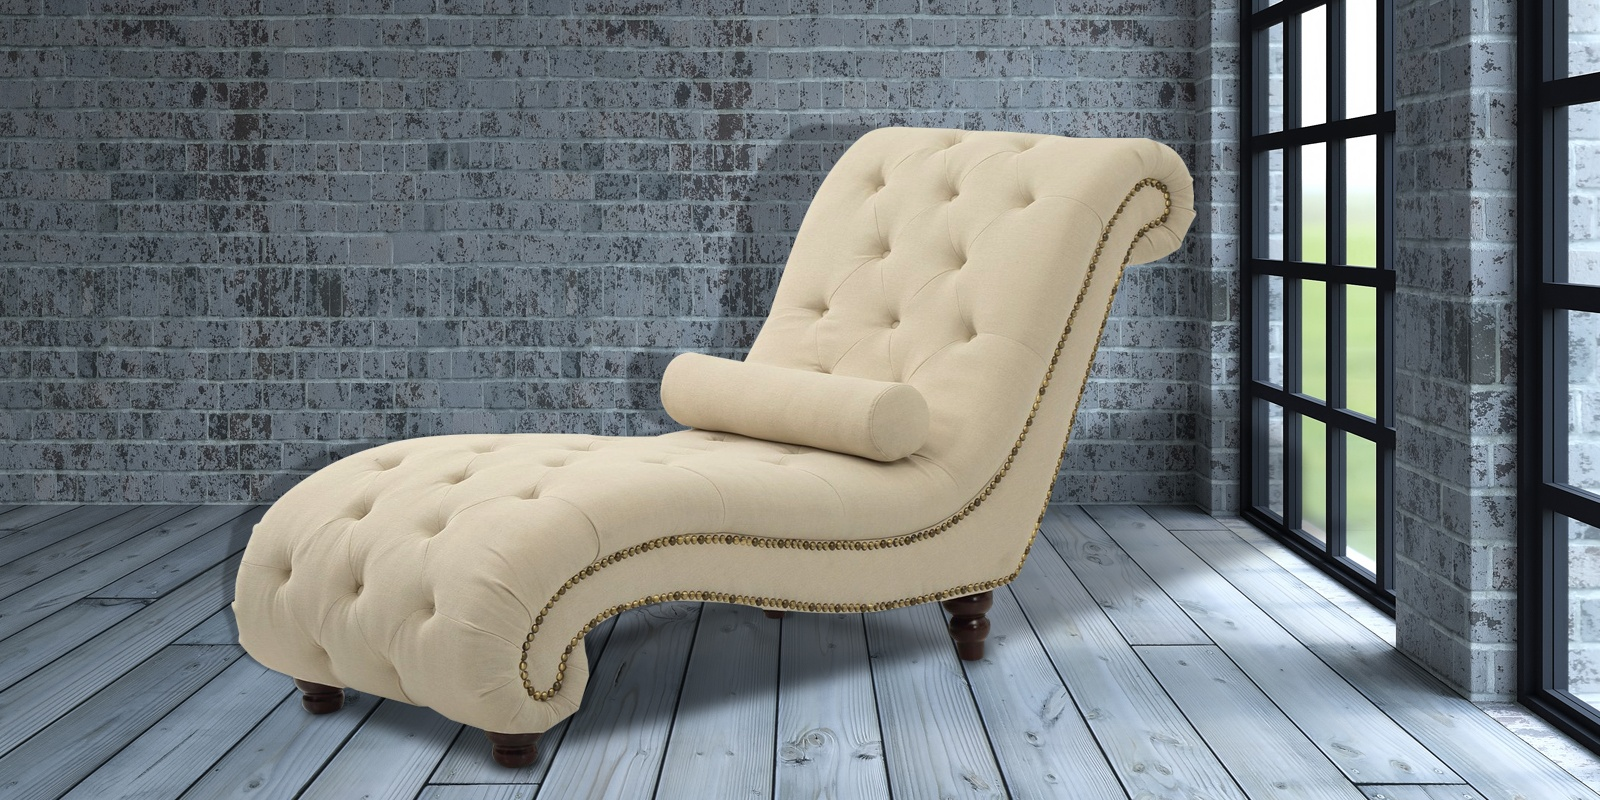 Comfortable Tufted Lounge Chaise In Beige Colour | Dreamzz ...